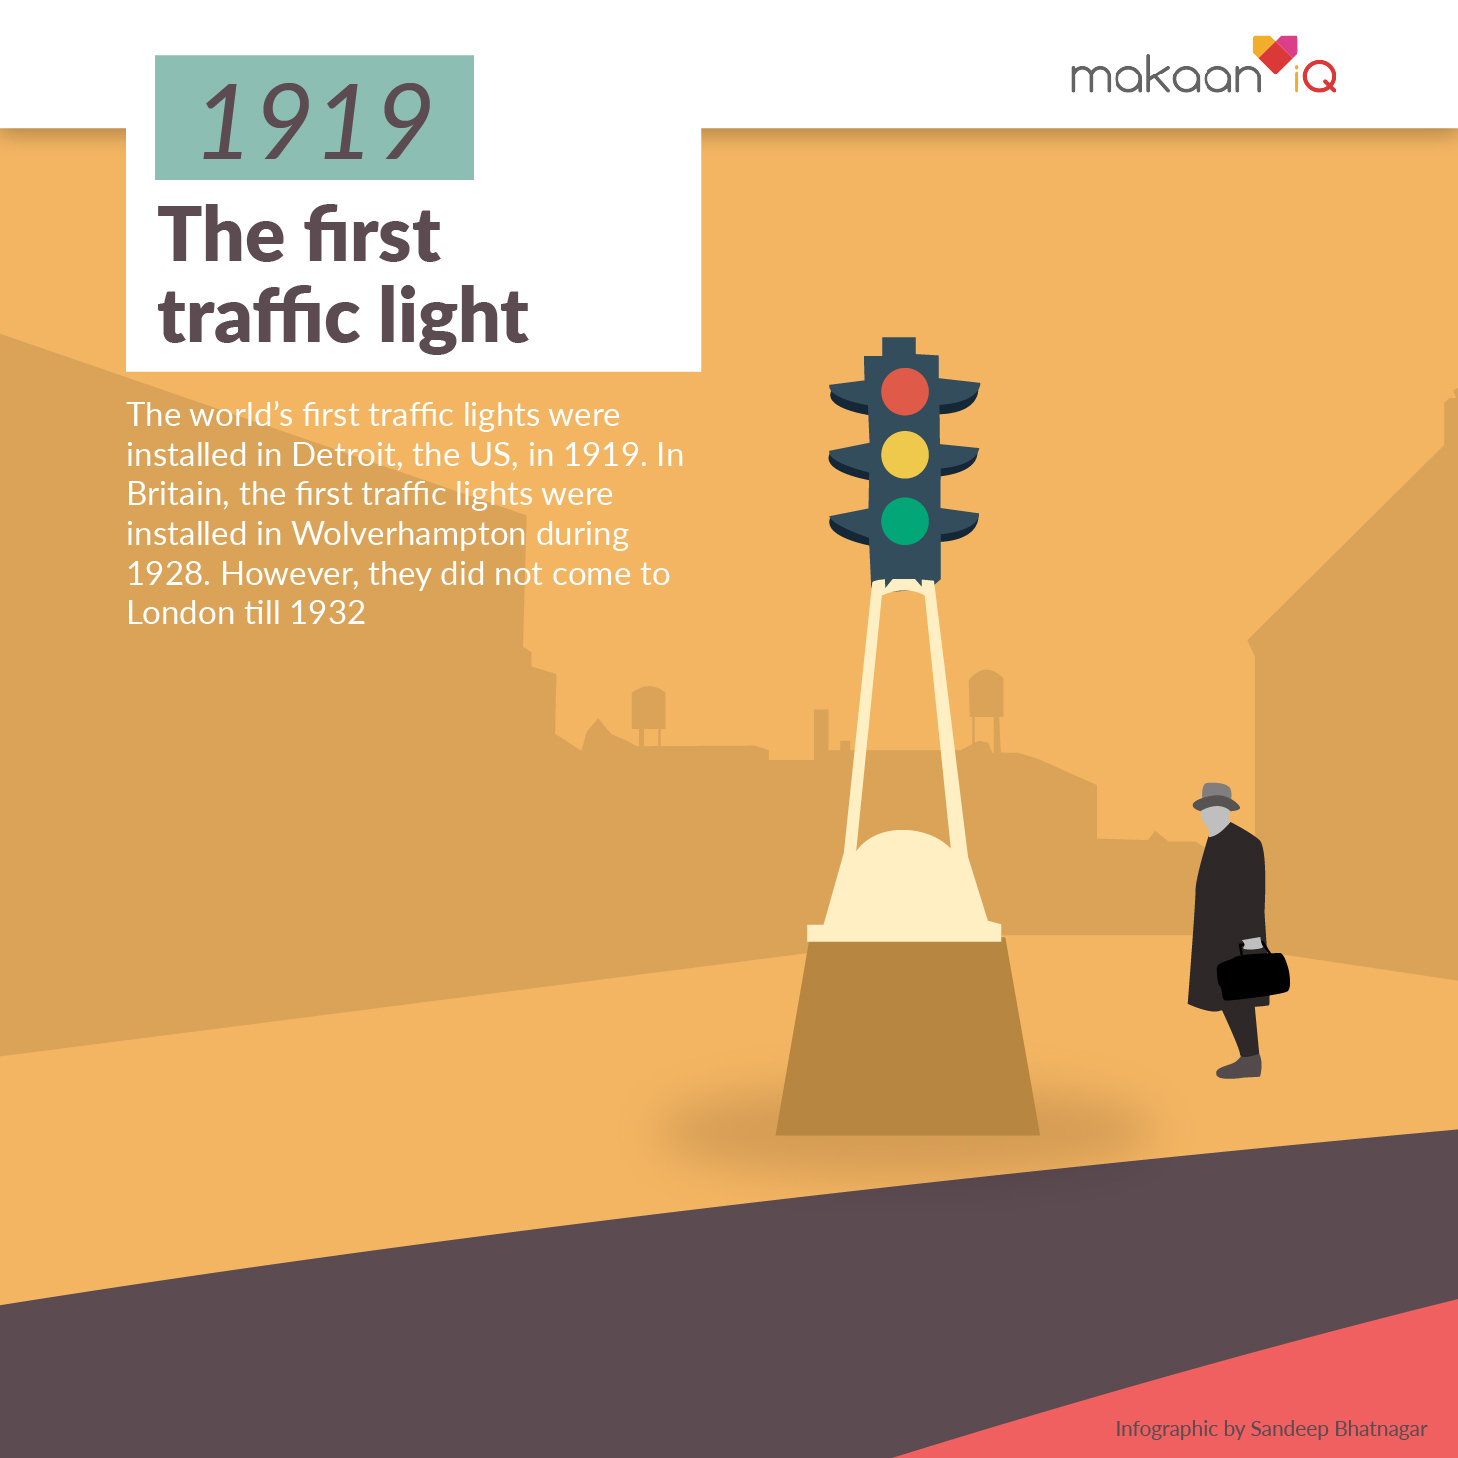 The First Traffic Light